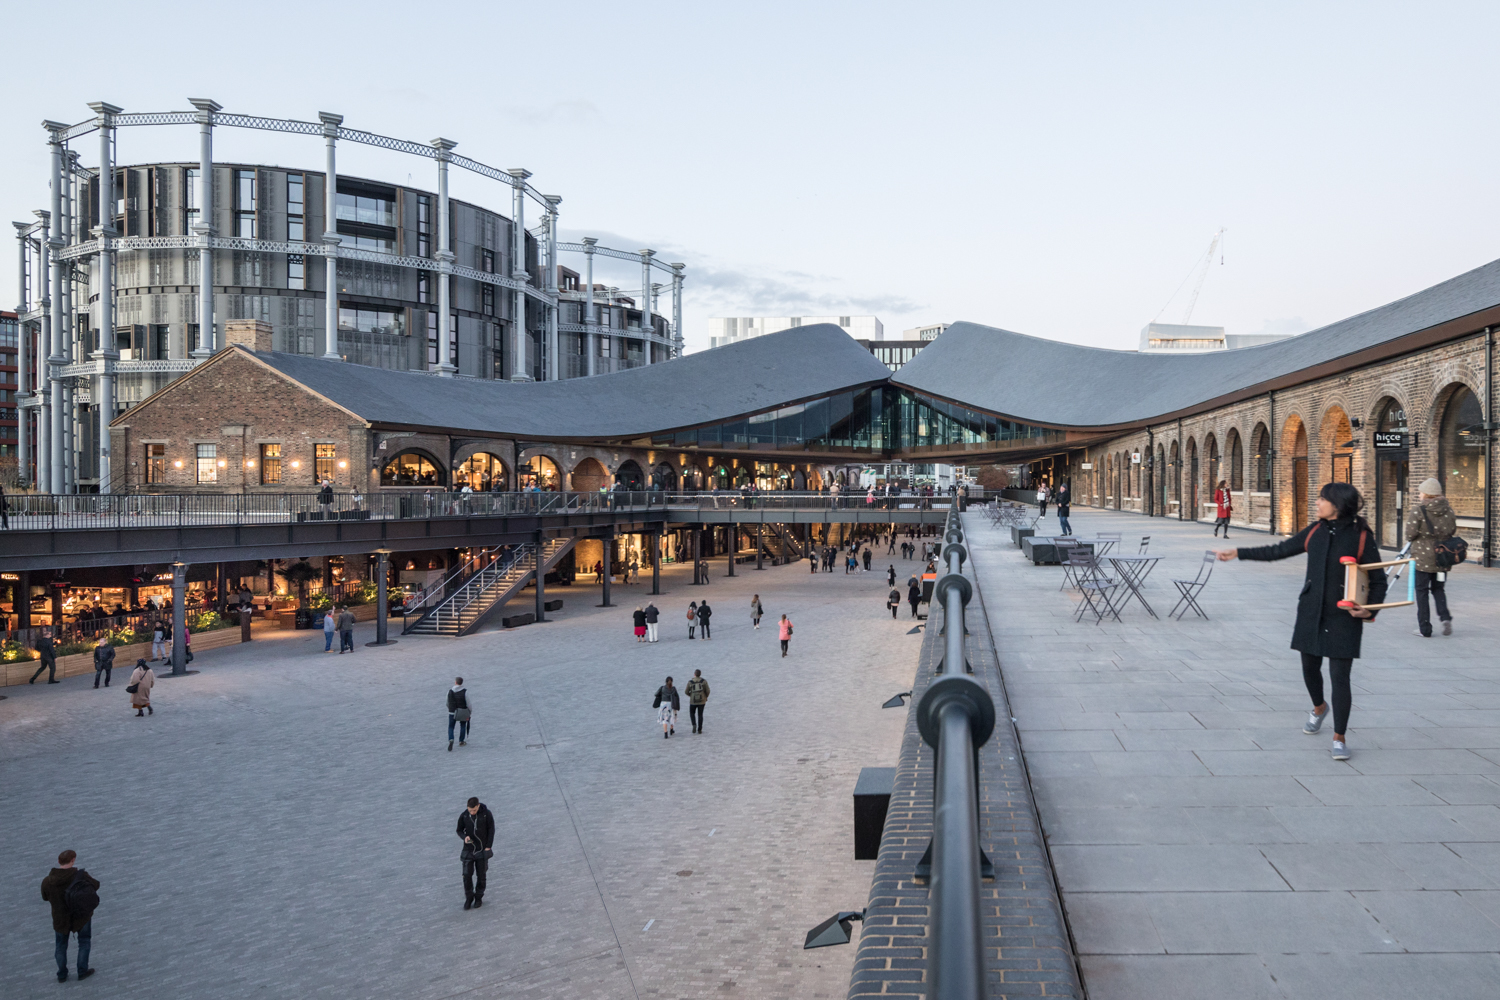 Gallery Of Coal Drops Yard Photographed Through The Lens